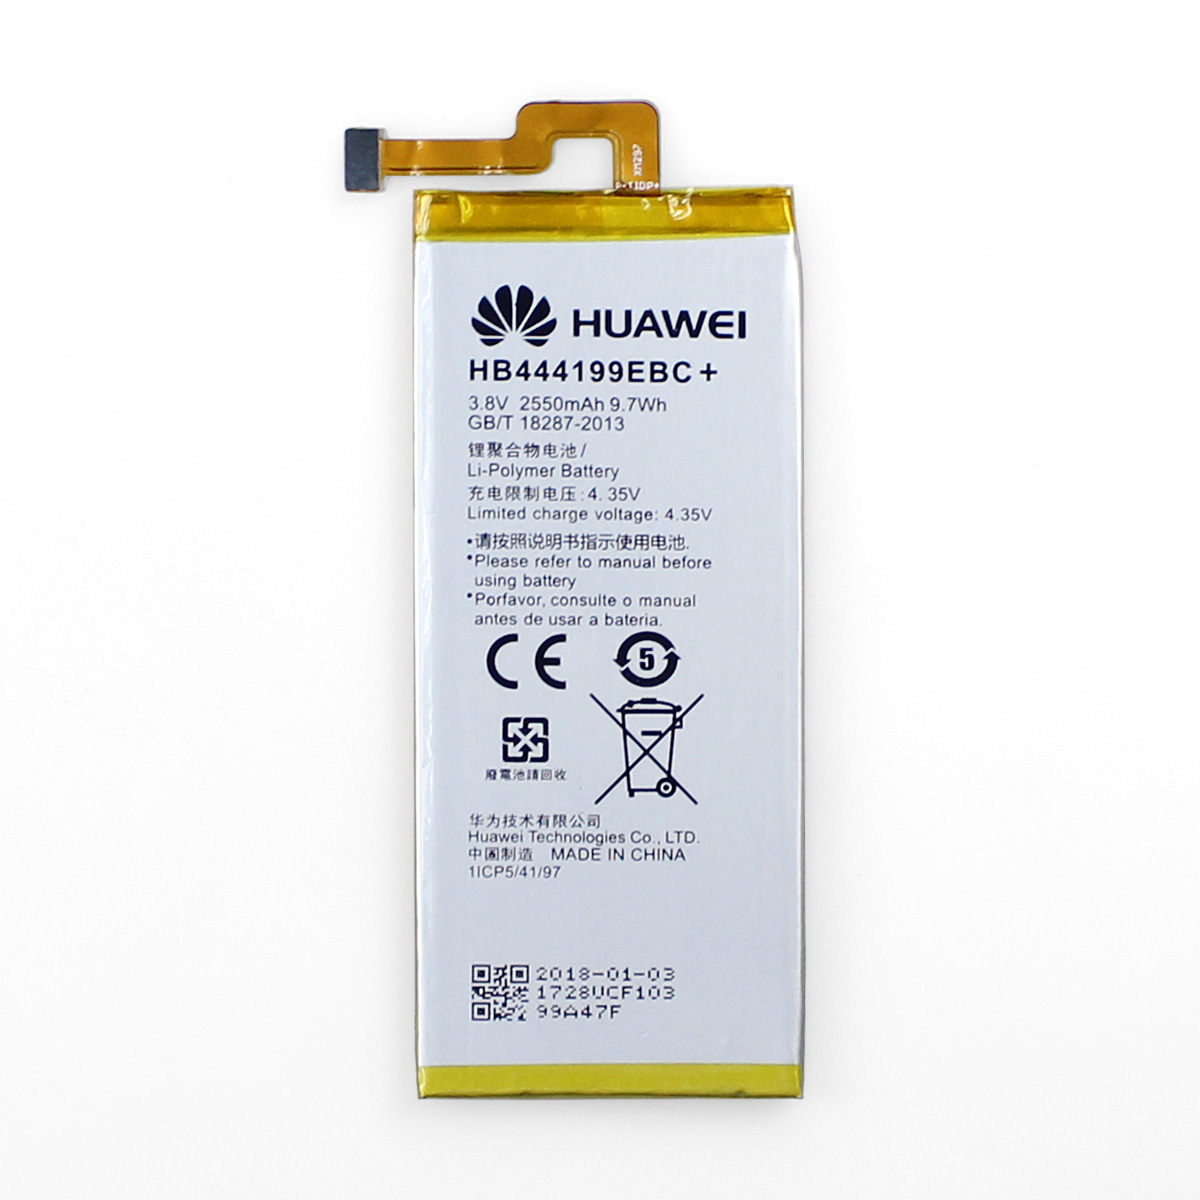 Huawei Honor 4C C8818 HB444199EBC+ Original Battery Wholesale